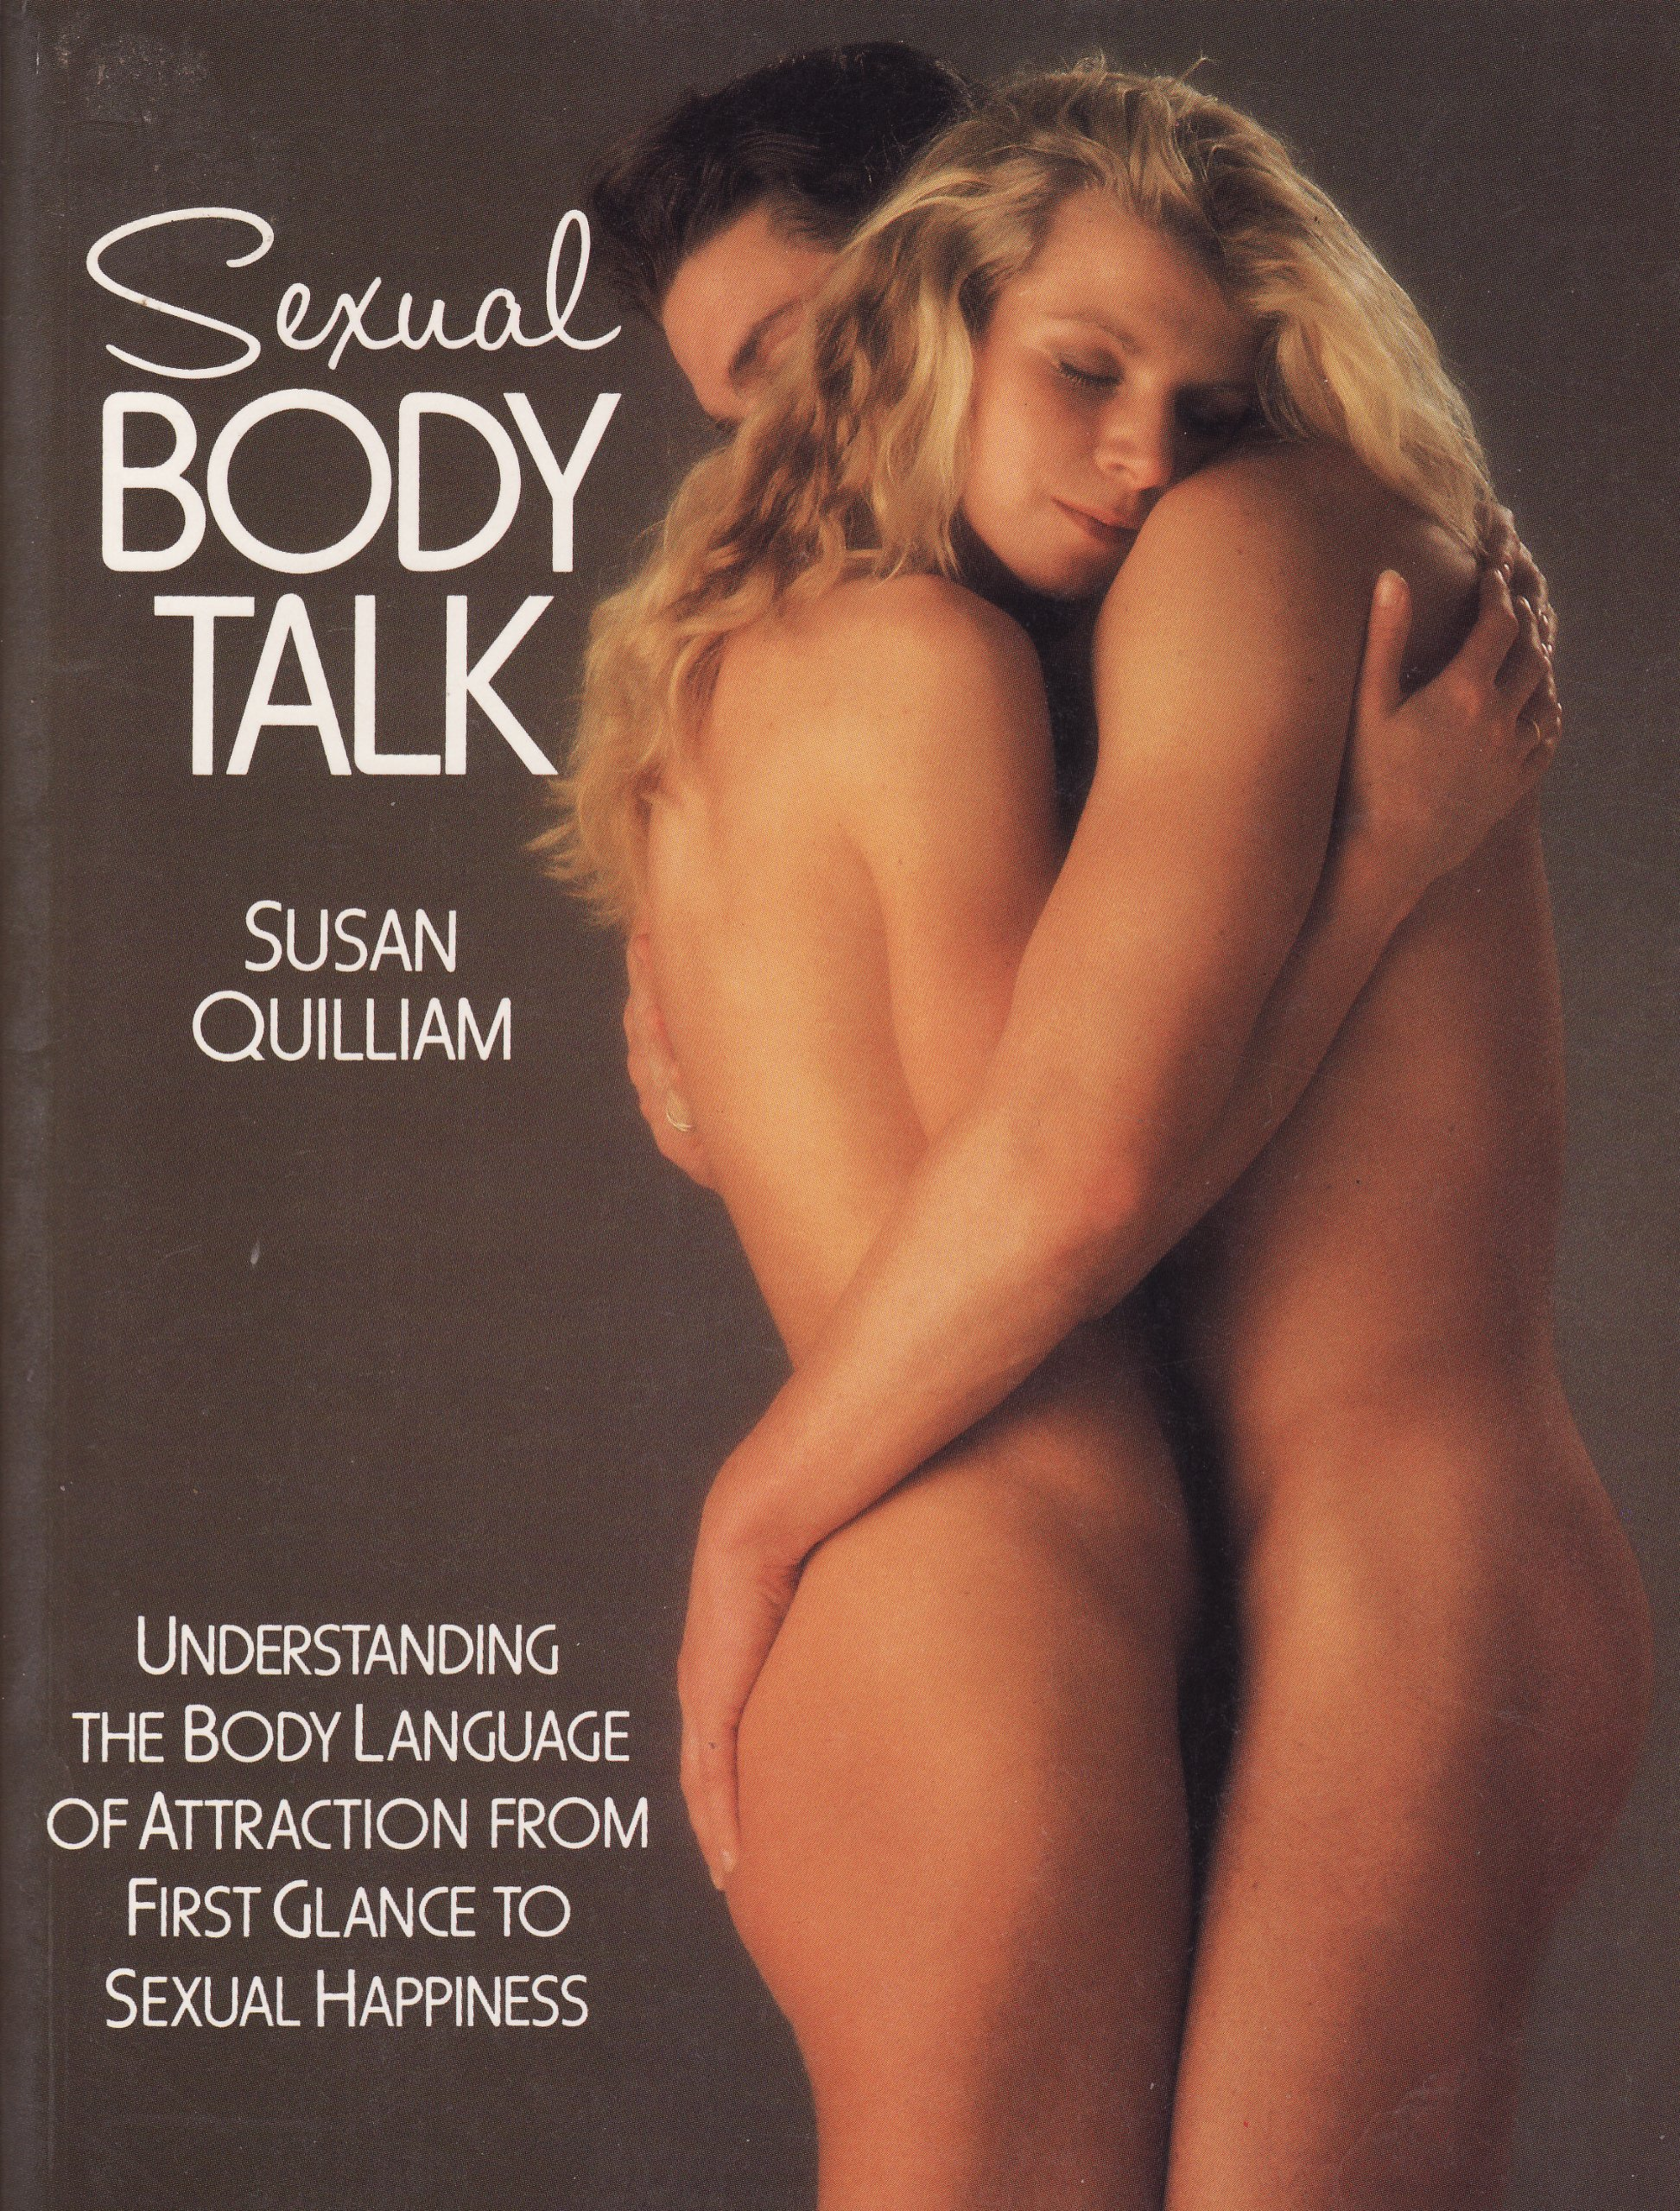 Sexual attraction and body language